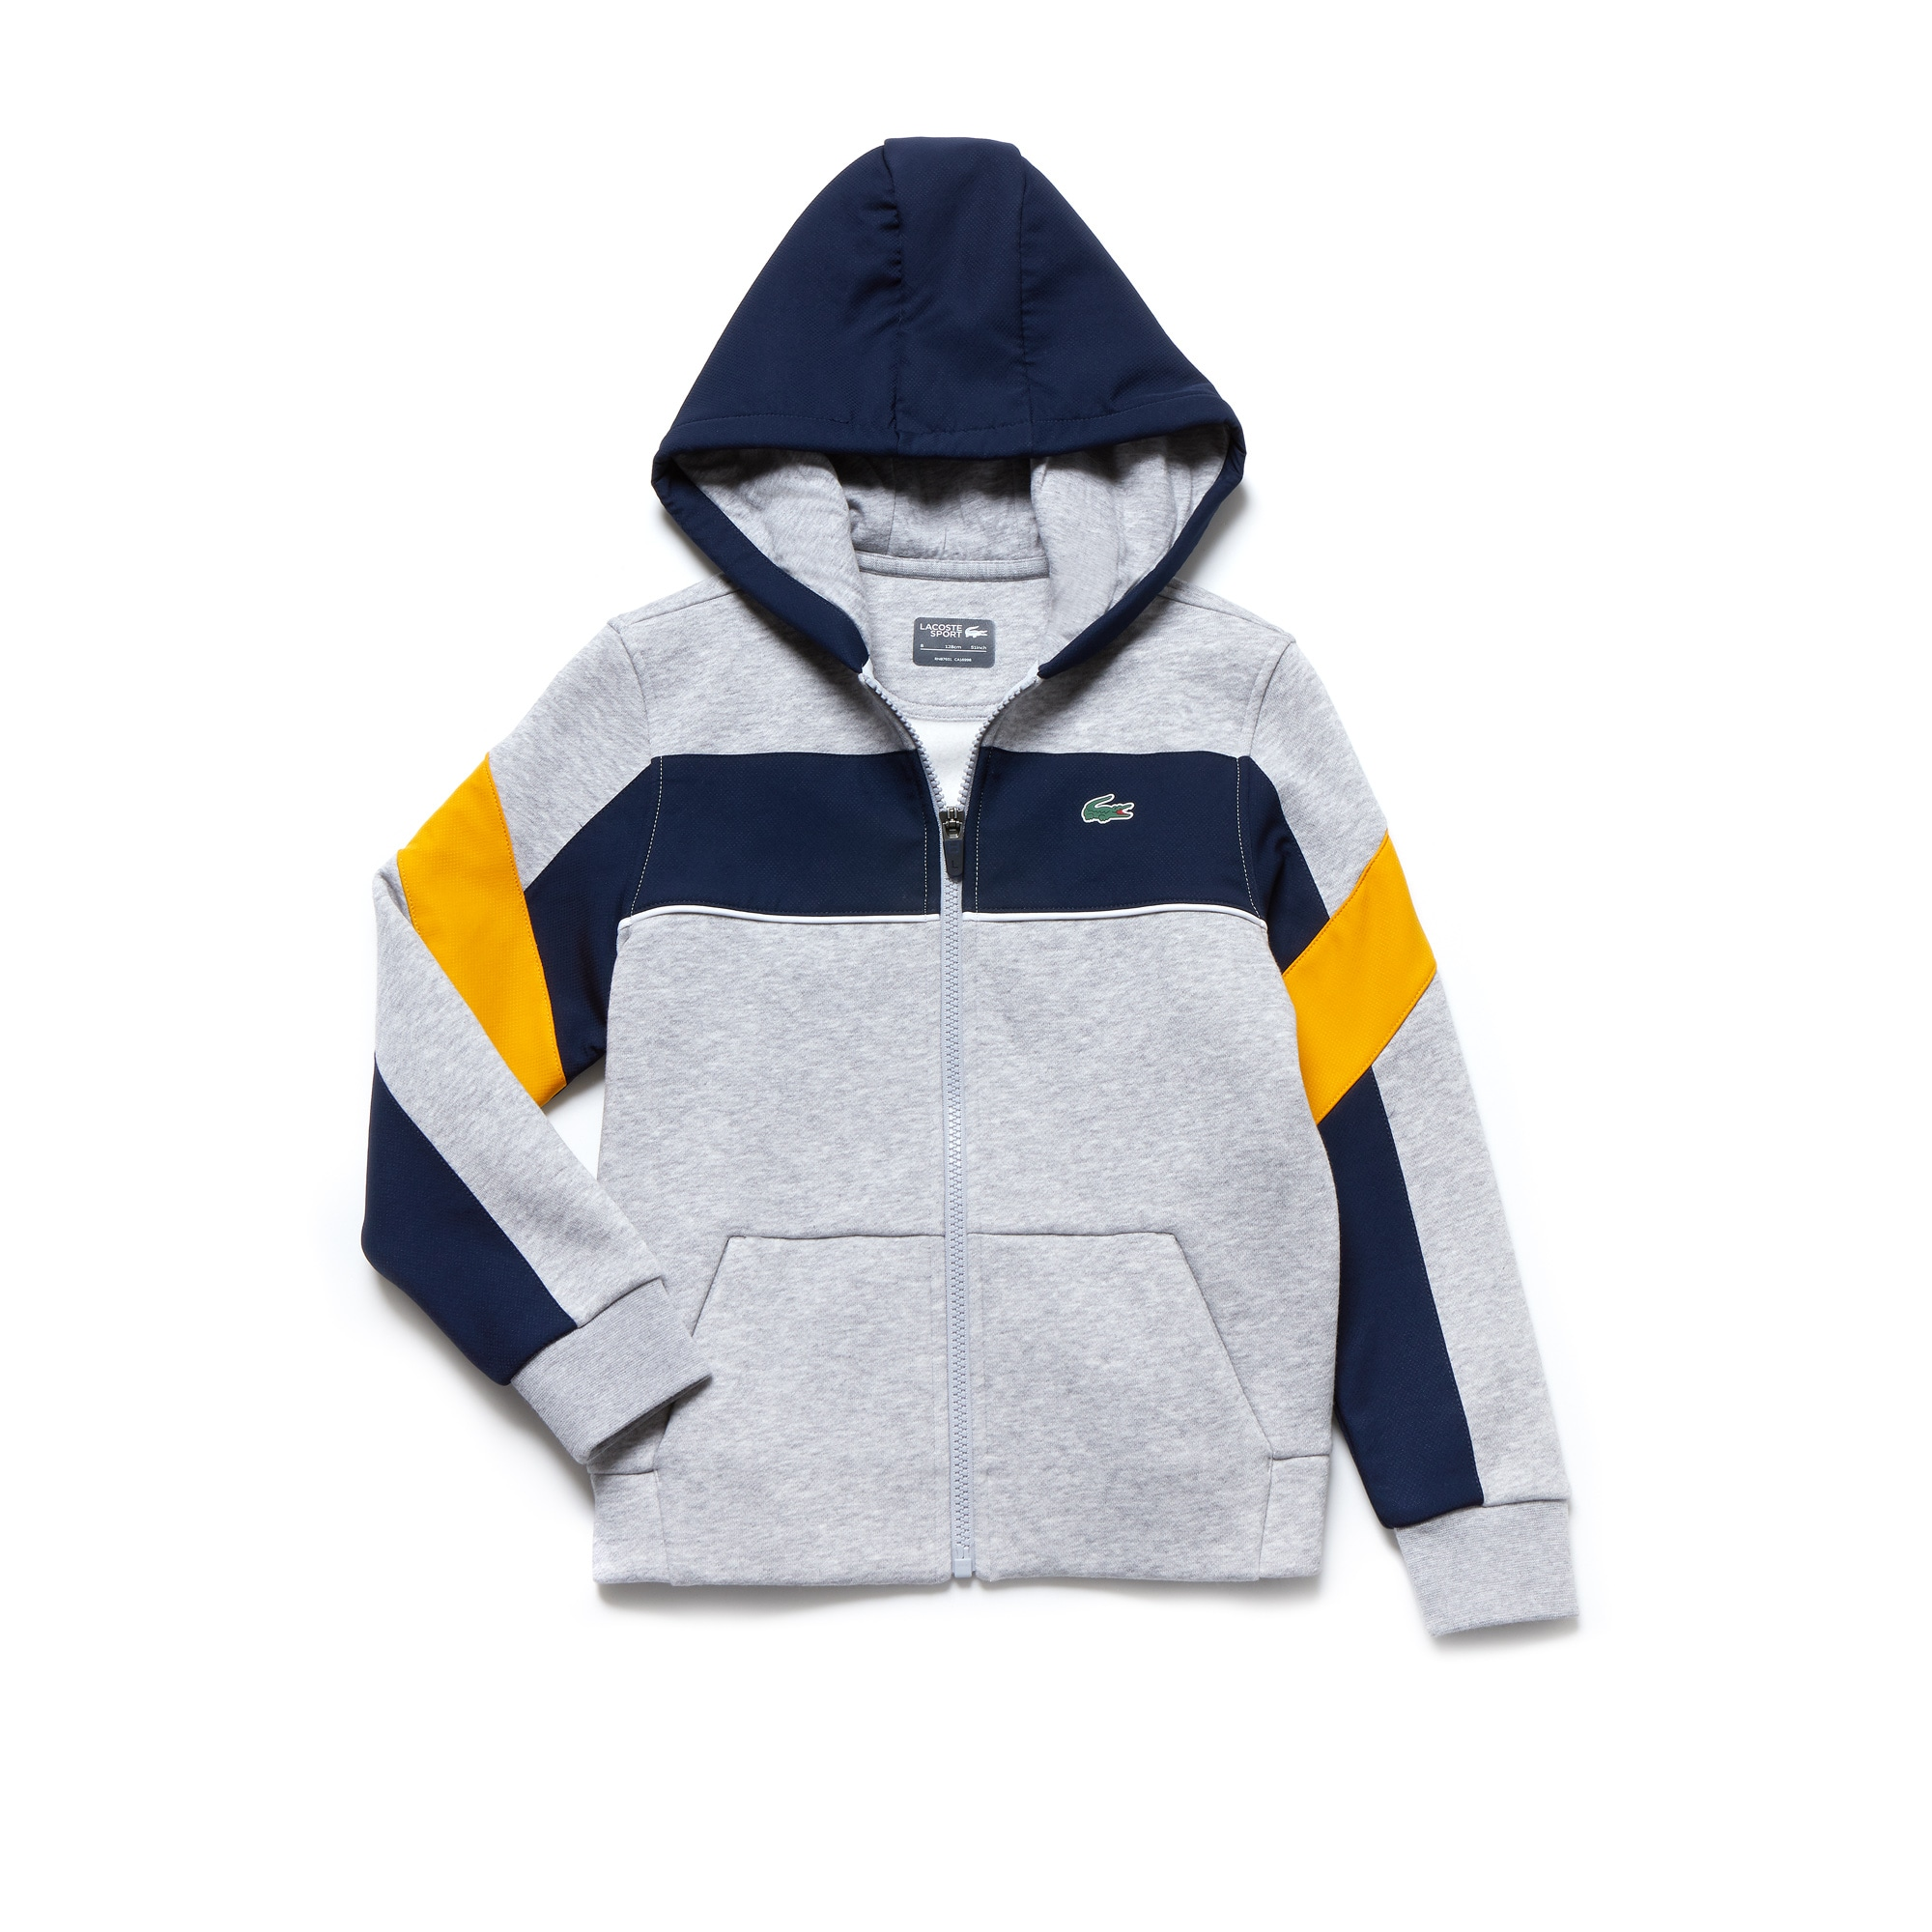 8d14c2378 Boys  SPORT Fleece And Taffeta Tennis Tracksuit